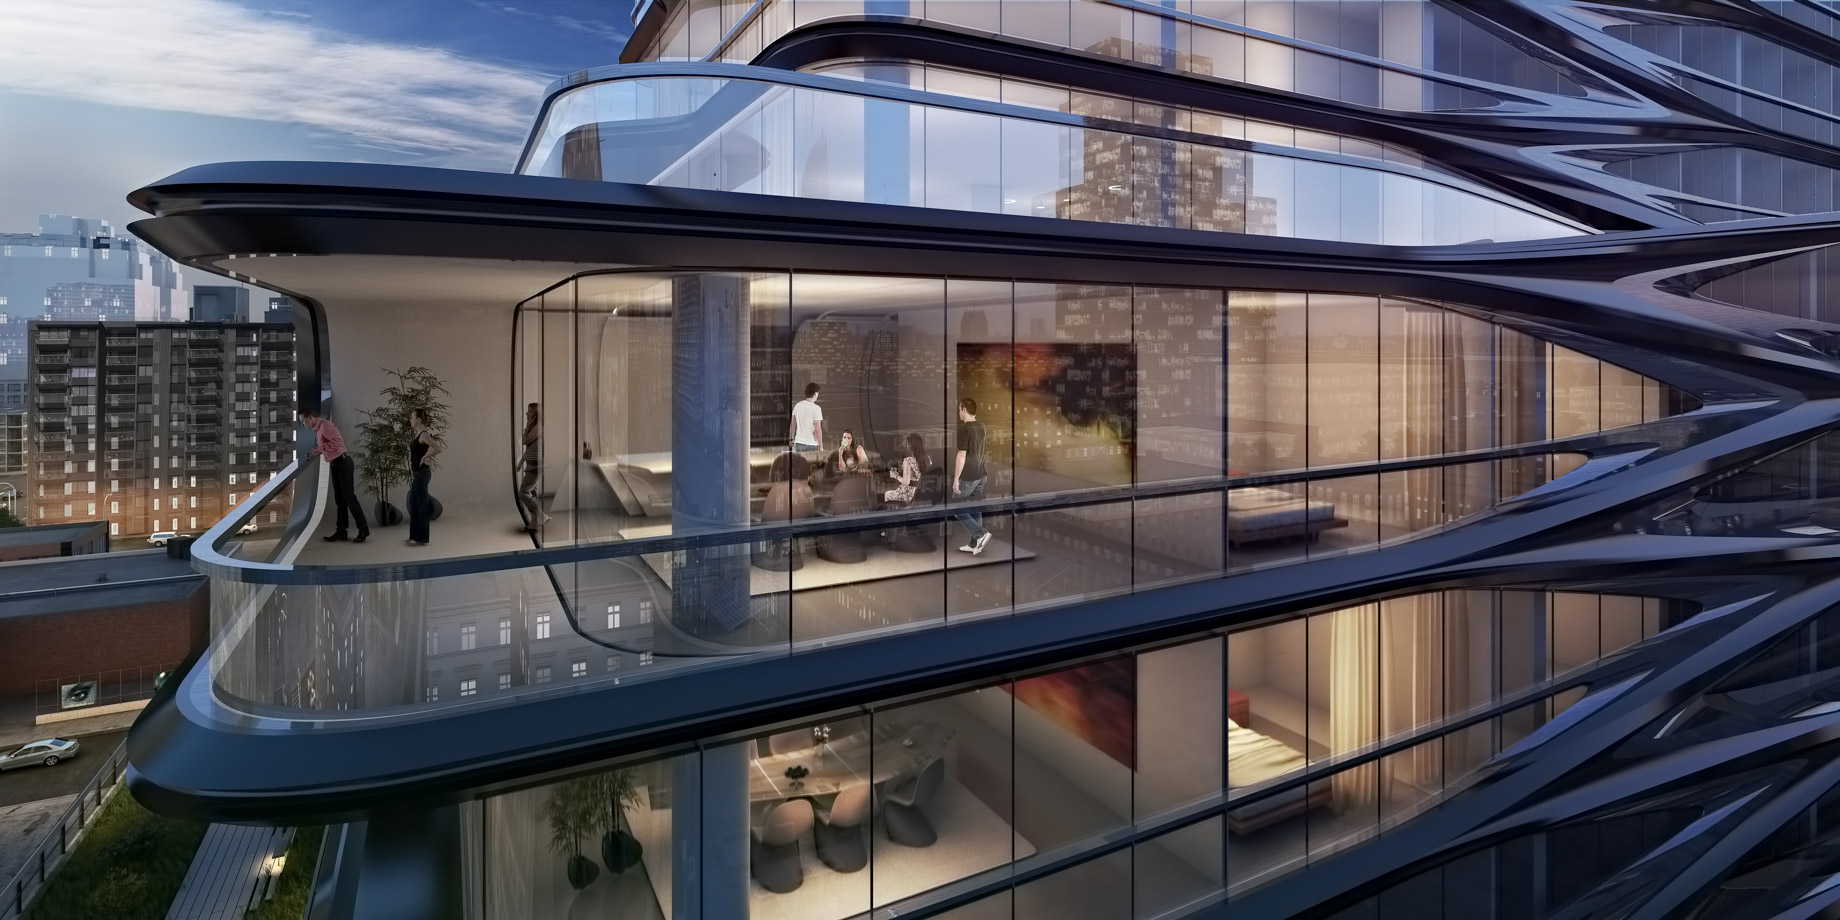 520 West 28th Street - New York City Luxury Market in 2018 - 5 Premier New Residential Developments